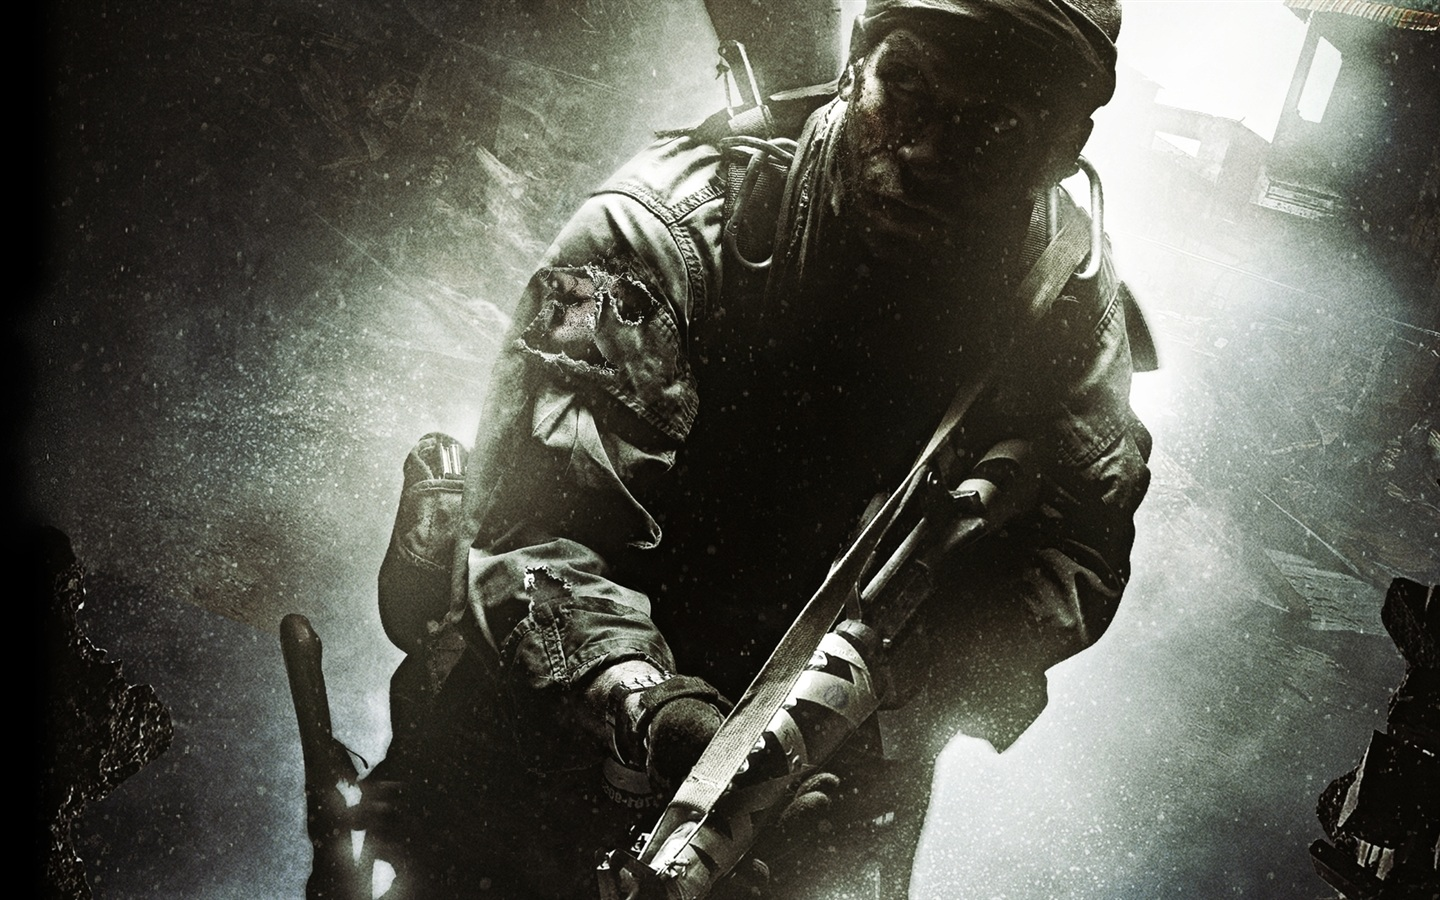 Call Duty Black Ops Ii Pic Free Download By Celina Leeburn